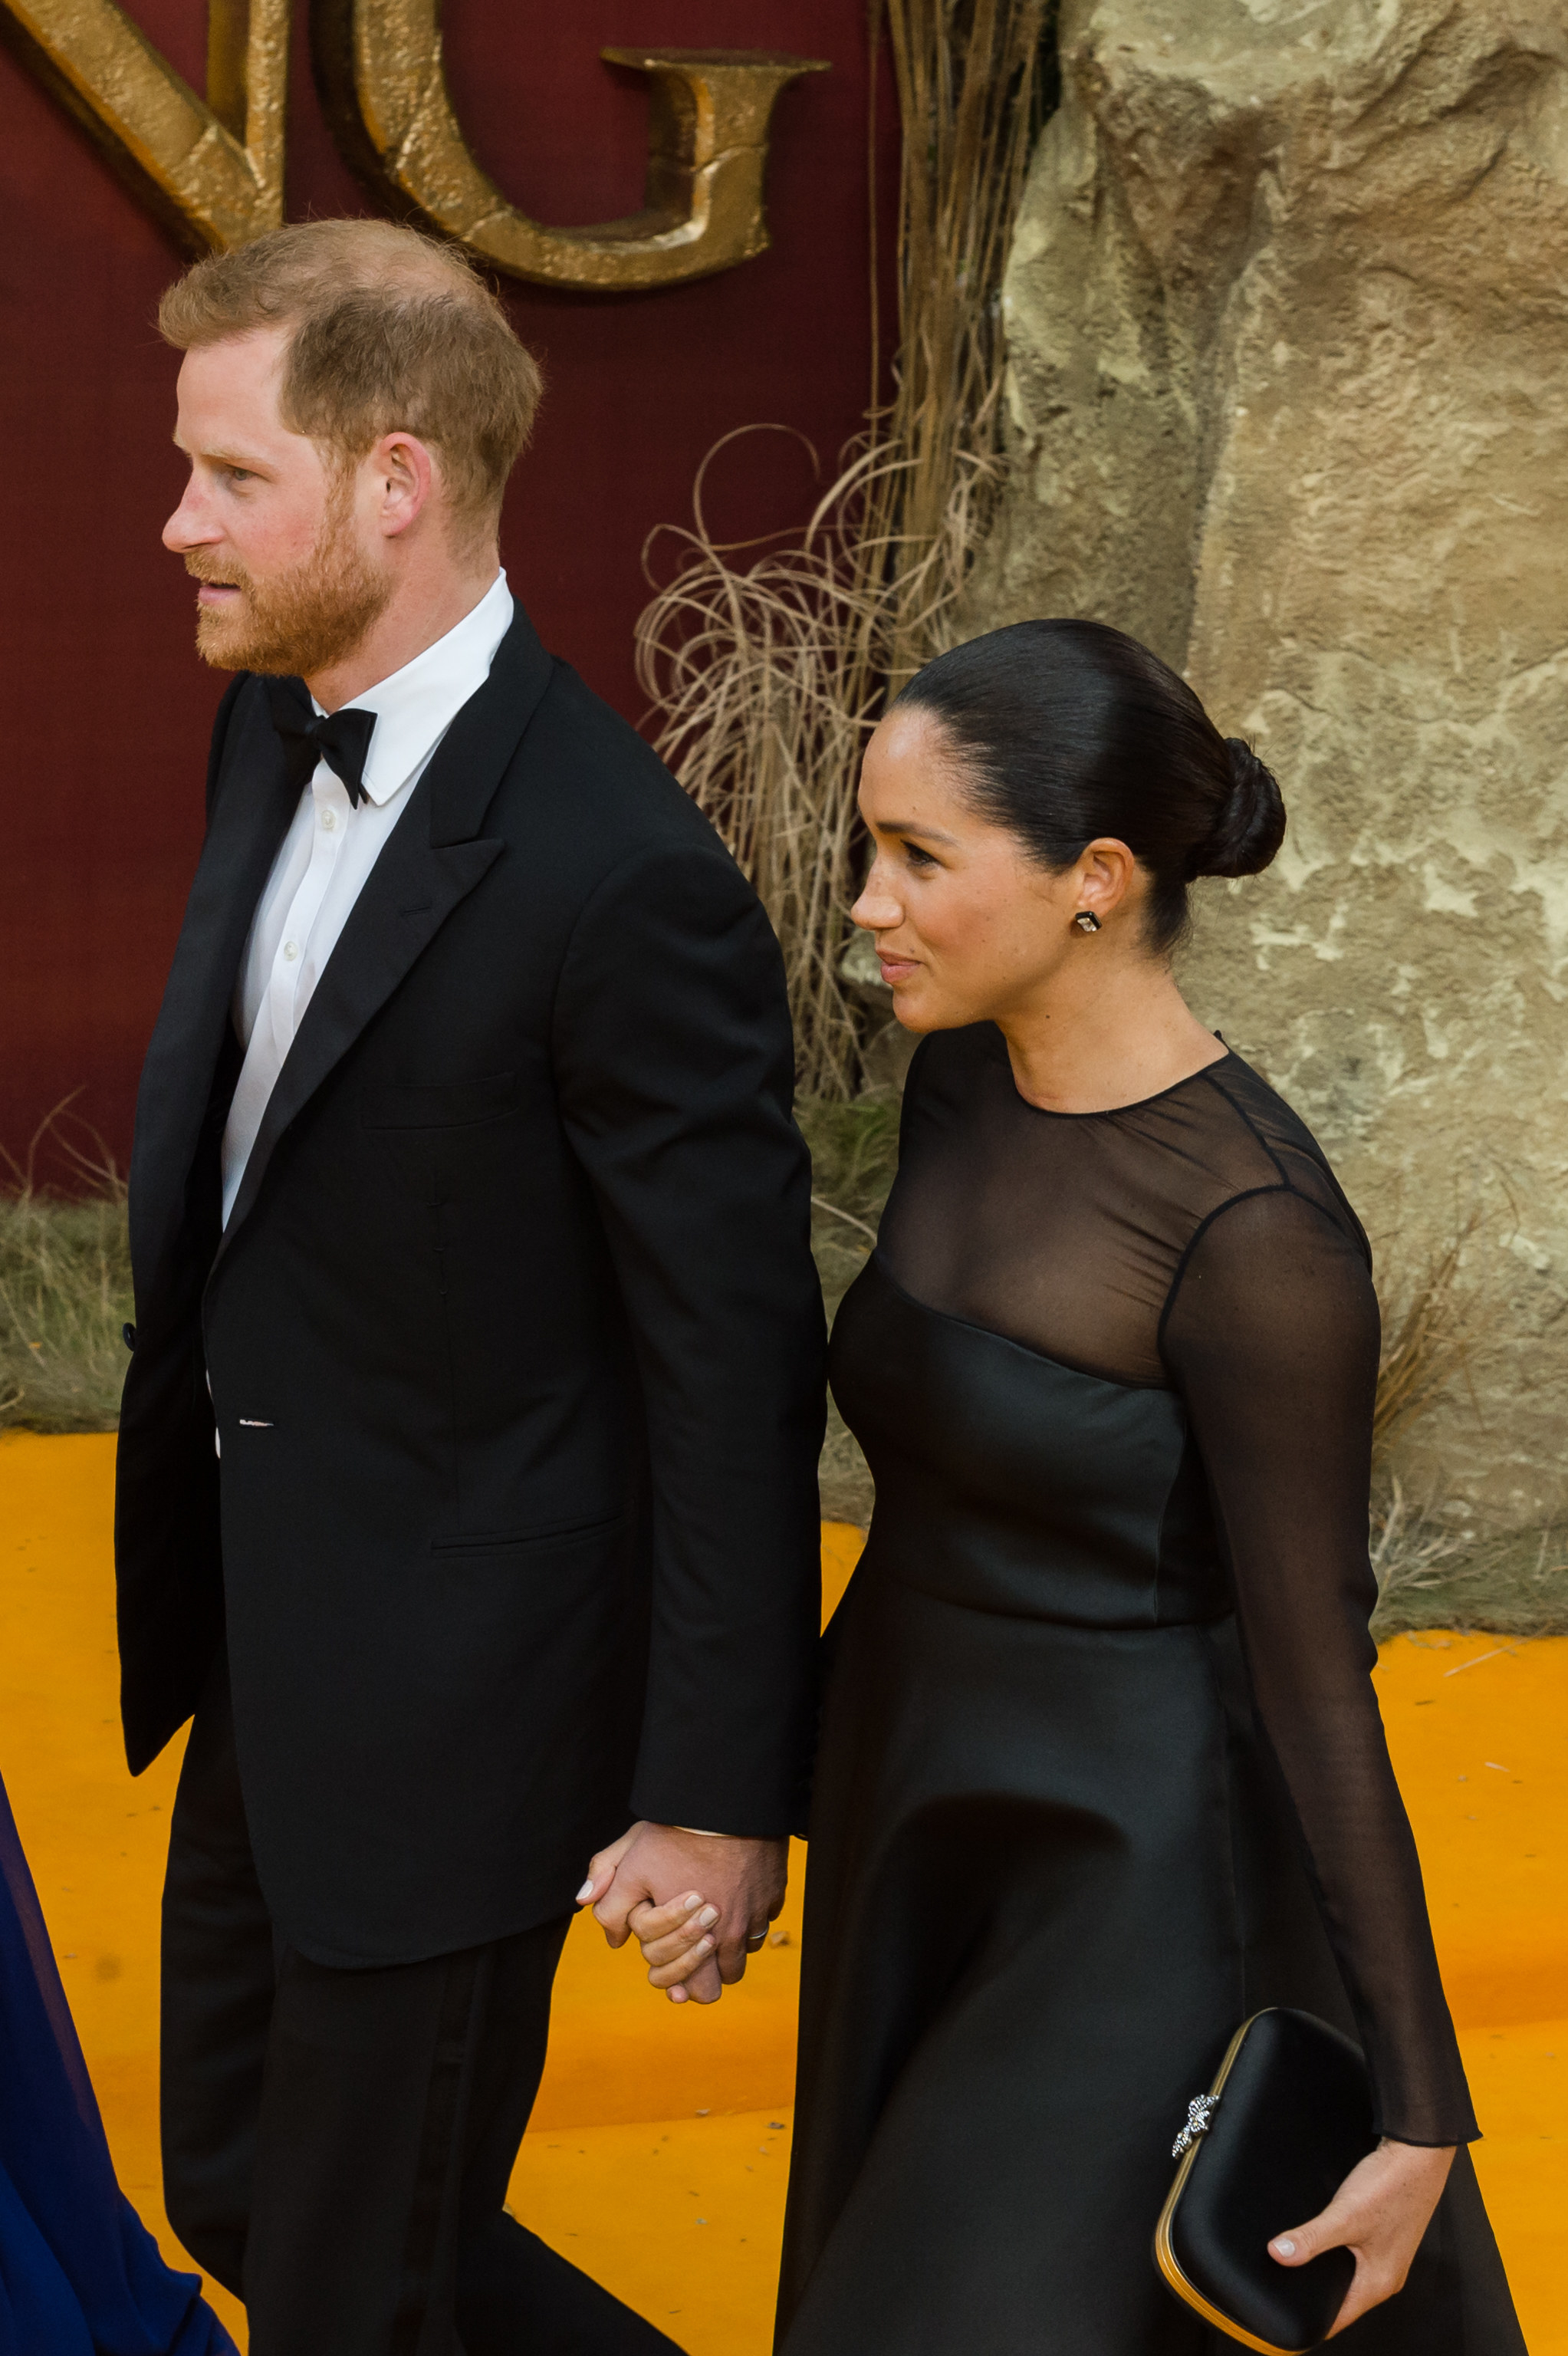 Prince Harry and Meghan walking hand in hand at an event